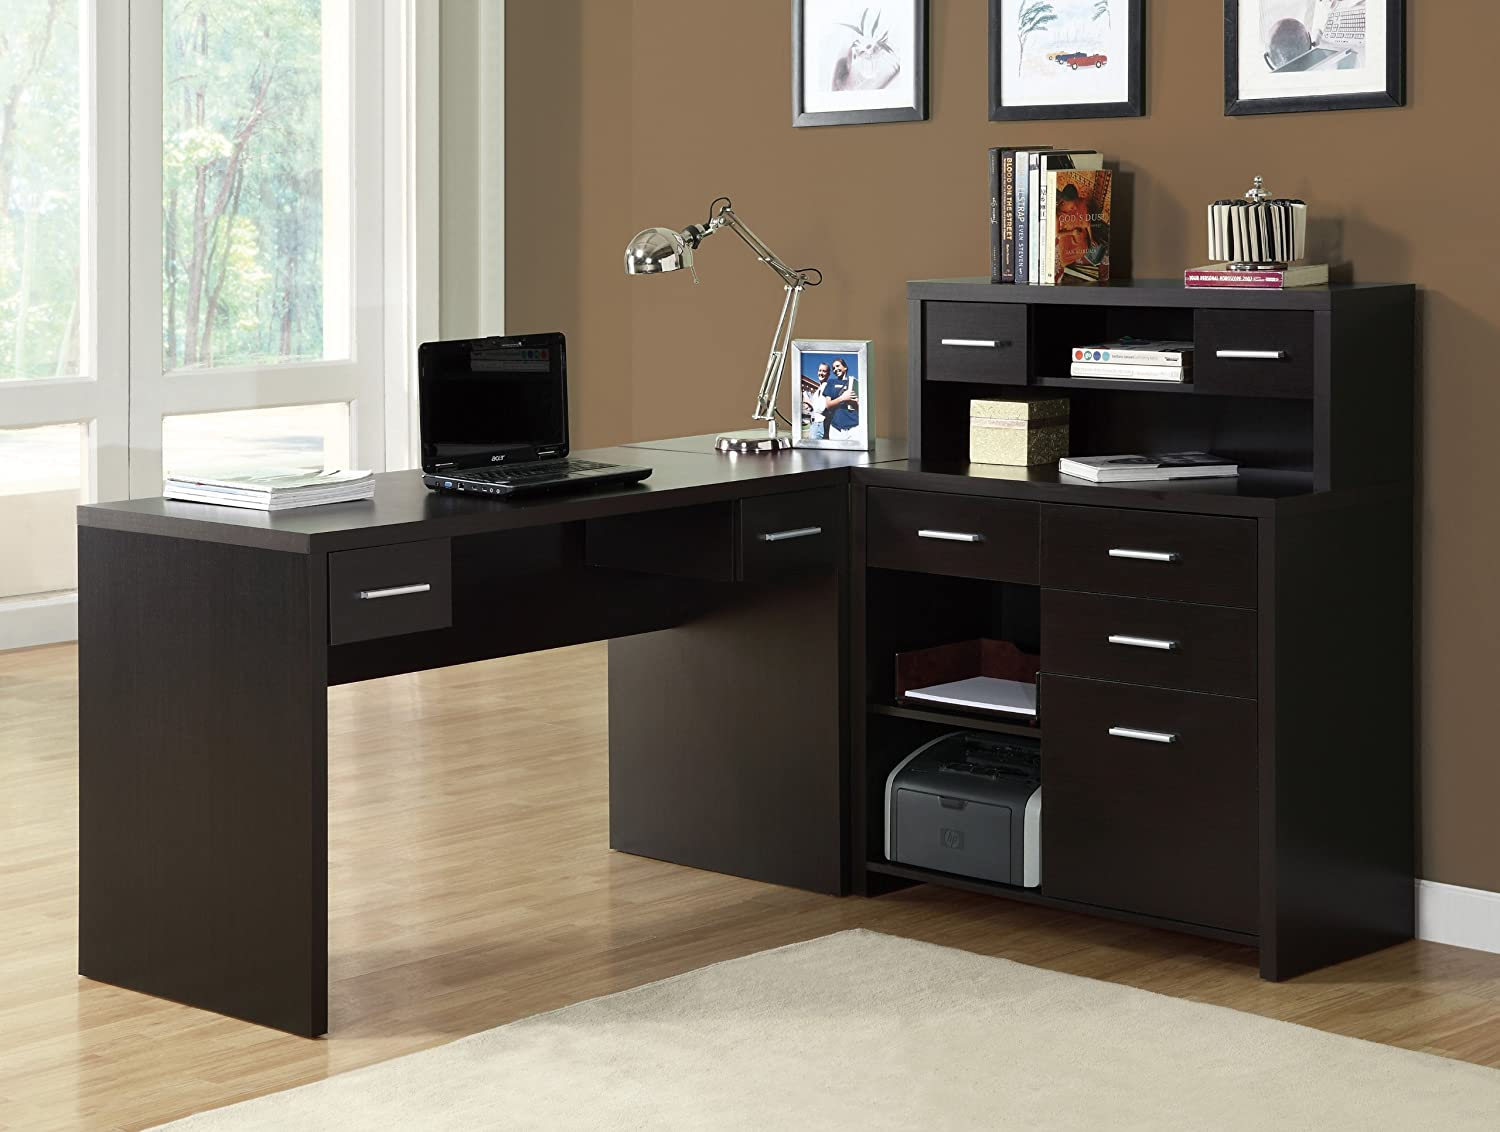 amazoncom monarch specialties hollow core l shaped home office desk cappuccino kitchen dining black office desk office desk